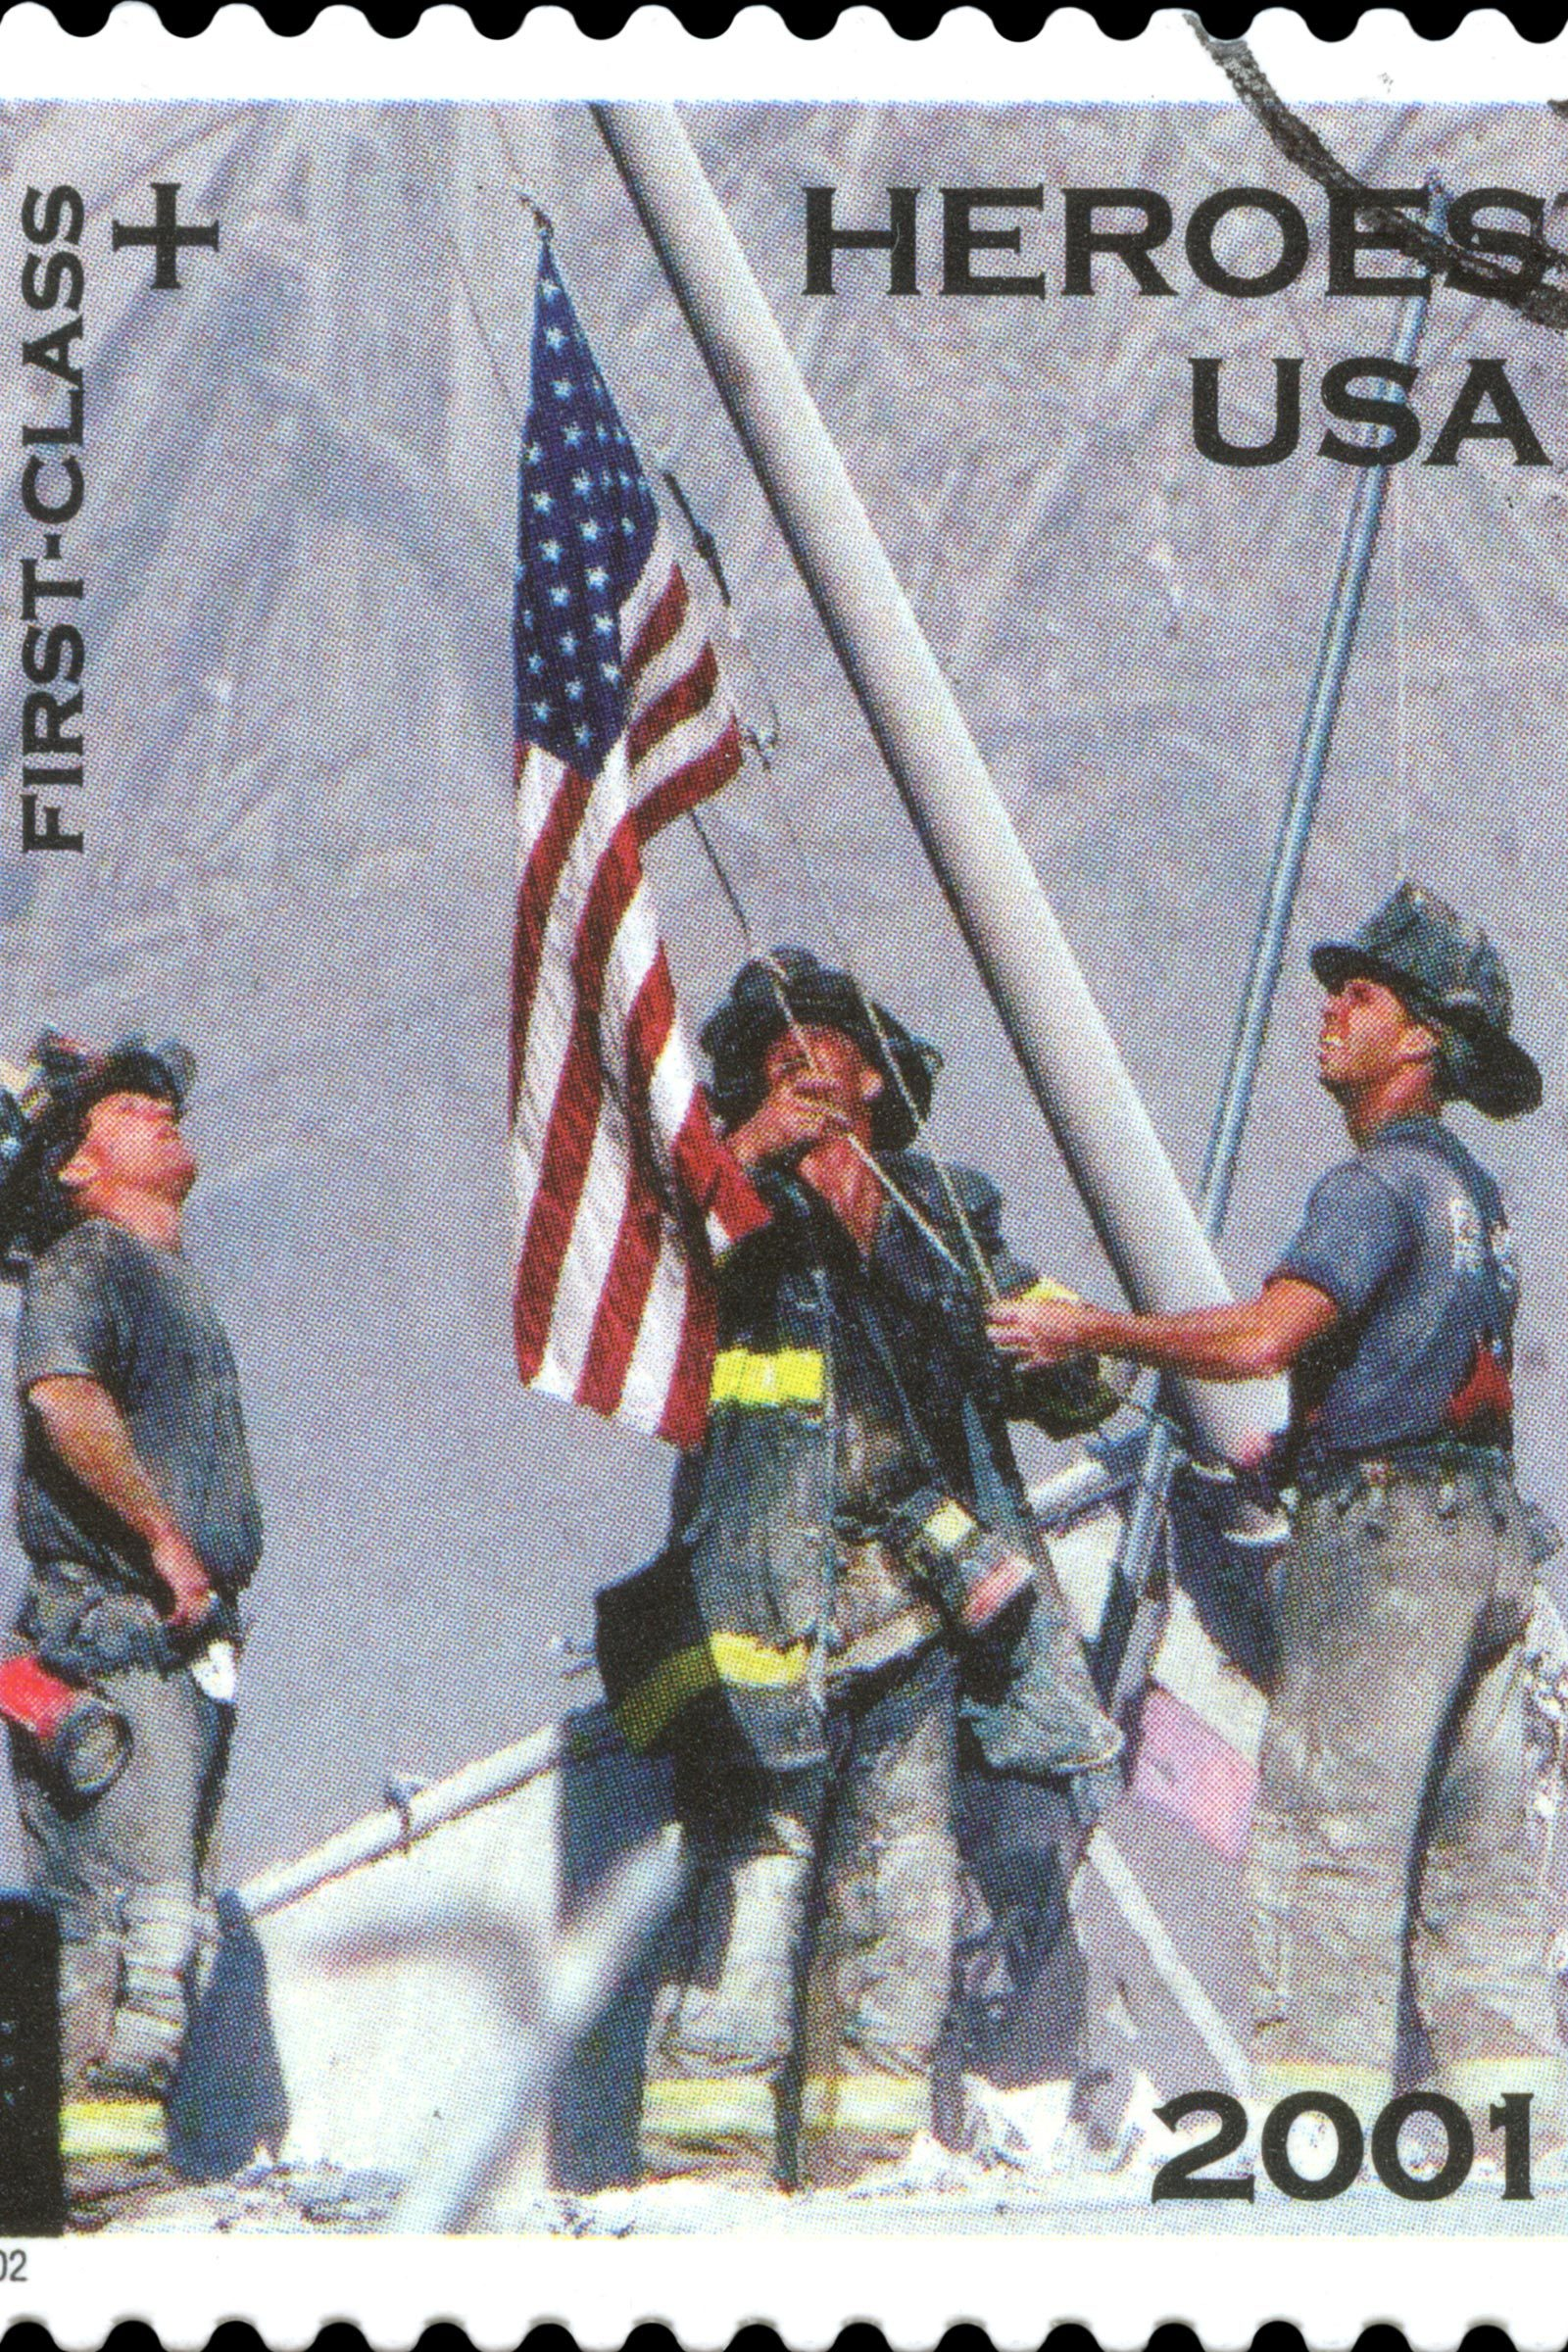 firefighters 9/11 stamp